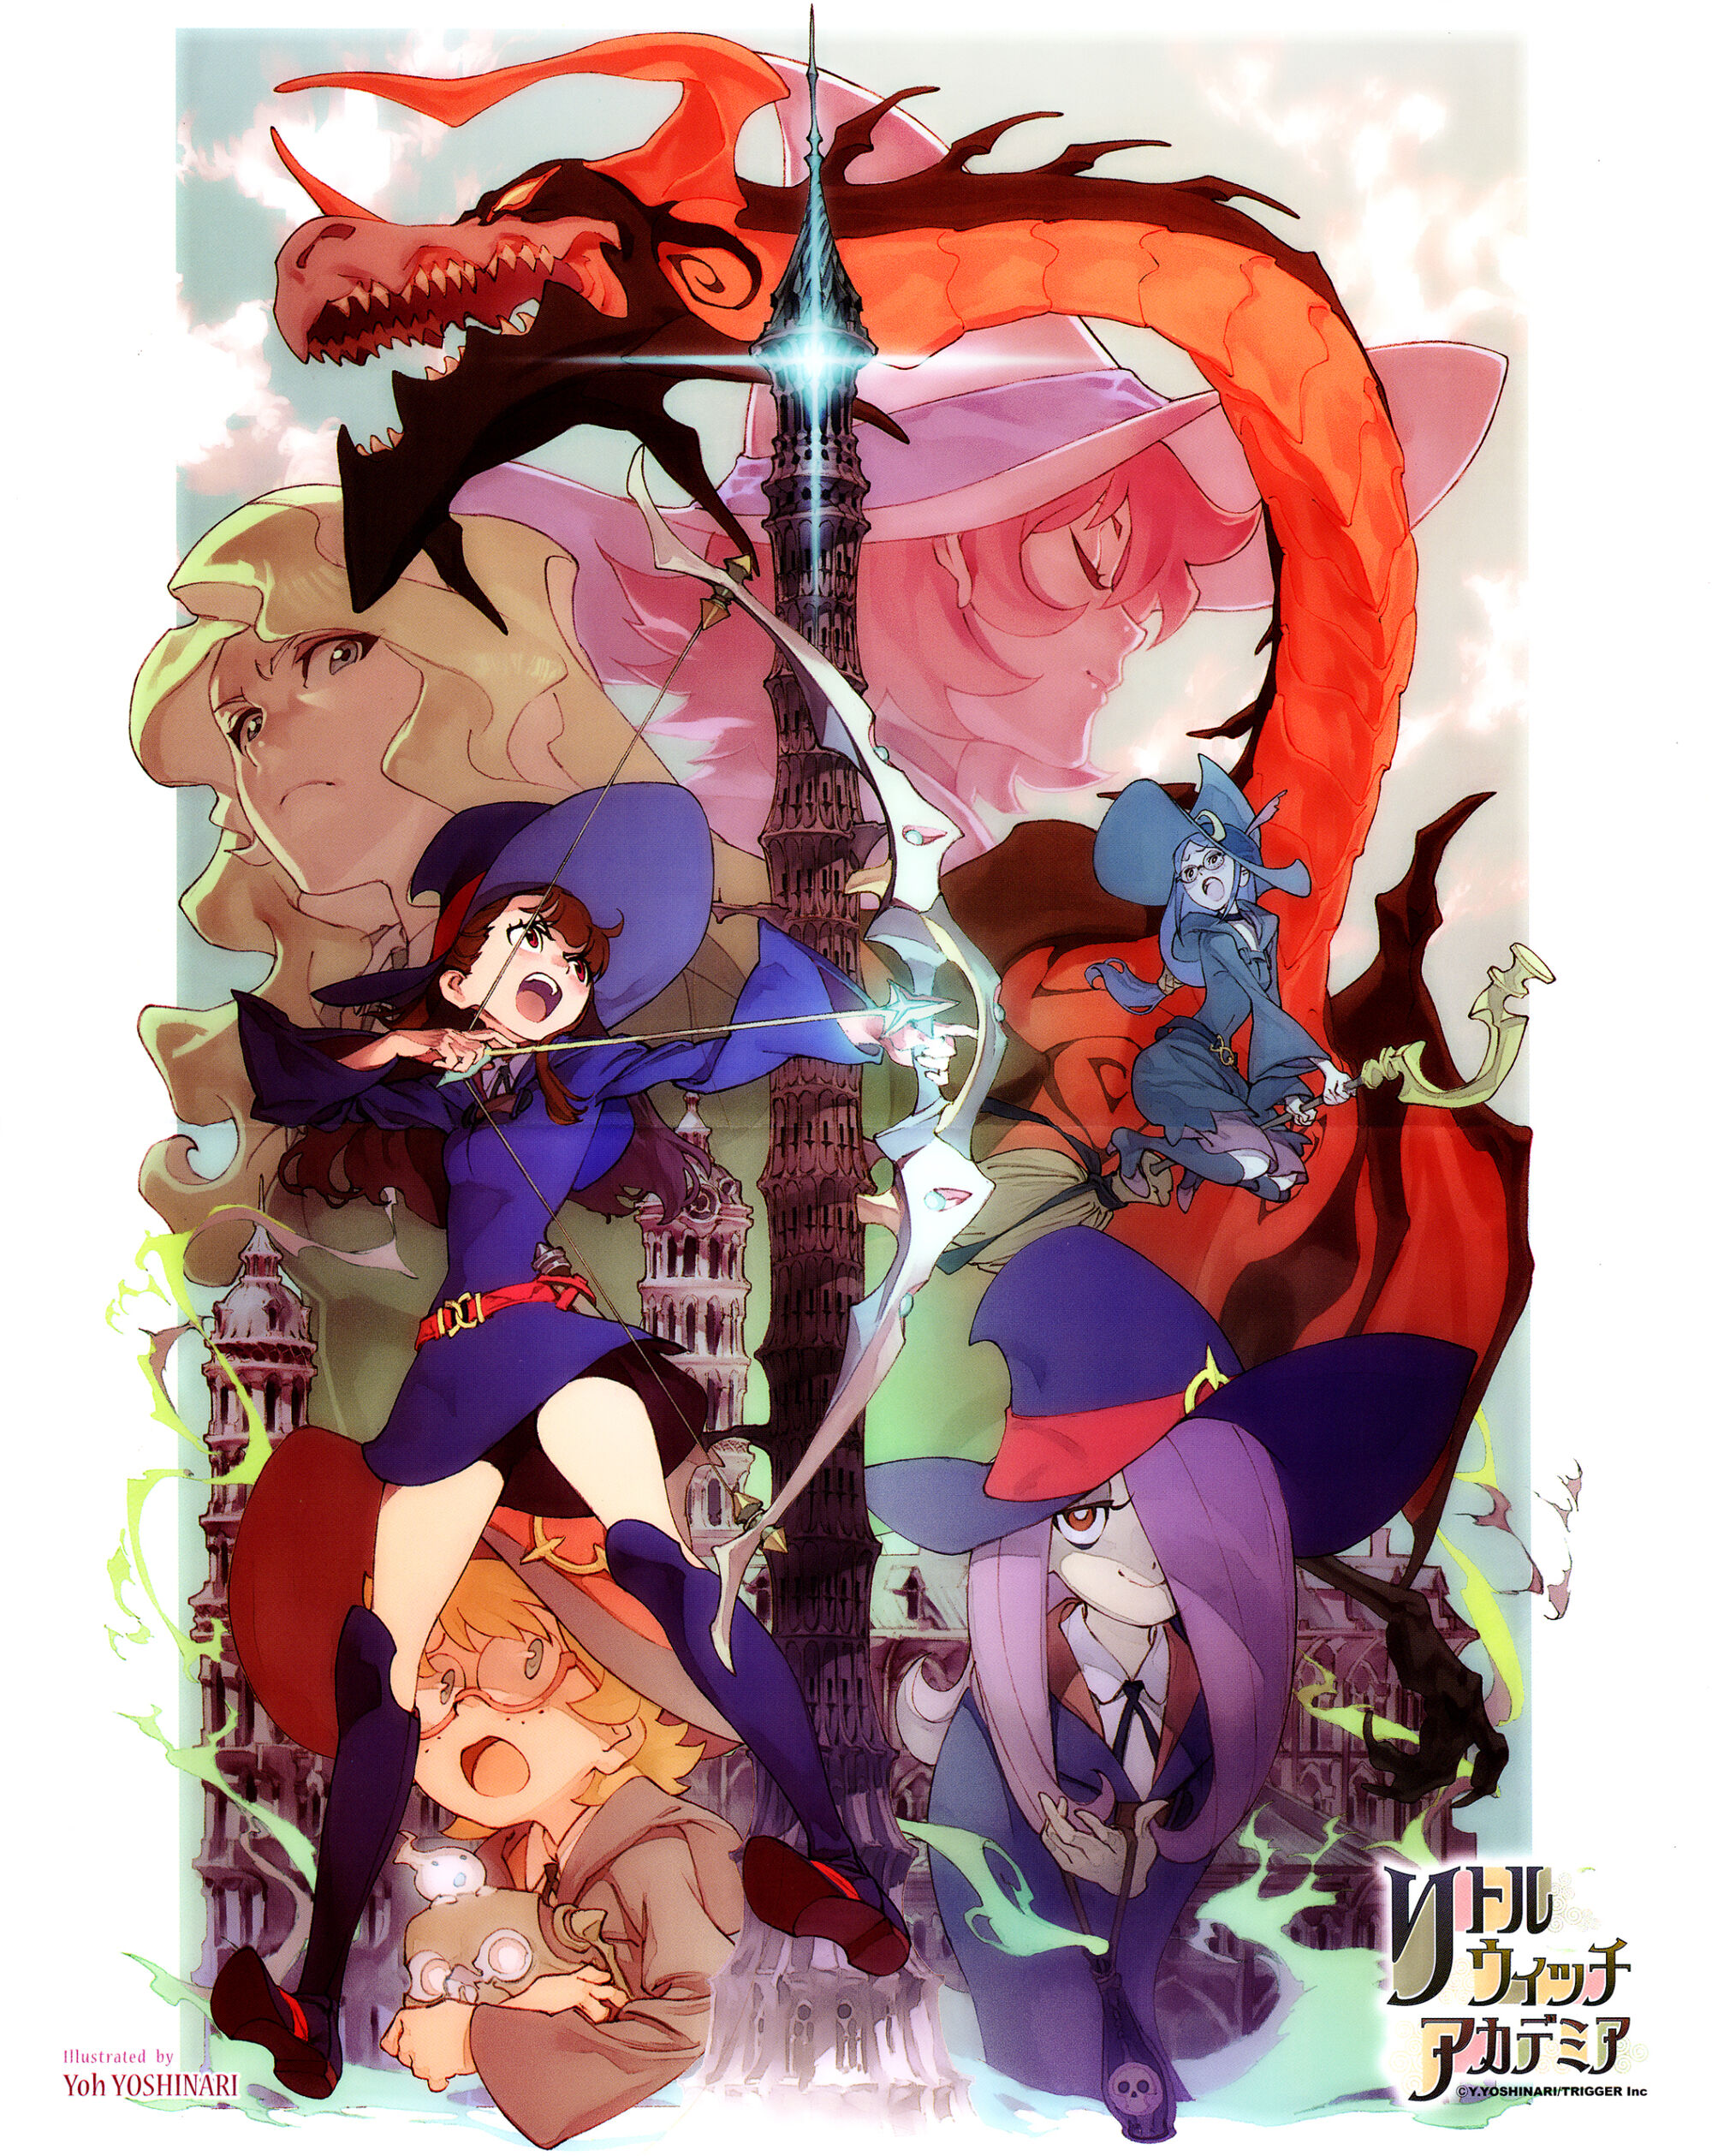 Little witch academia is a japanese anime franchise created by yoh yoshinari and produced by trigger known for kill la kill and space patrol luluco among